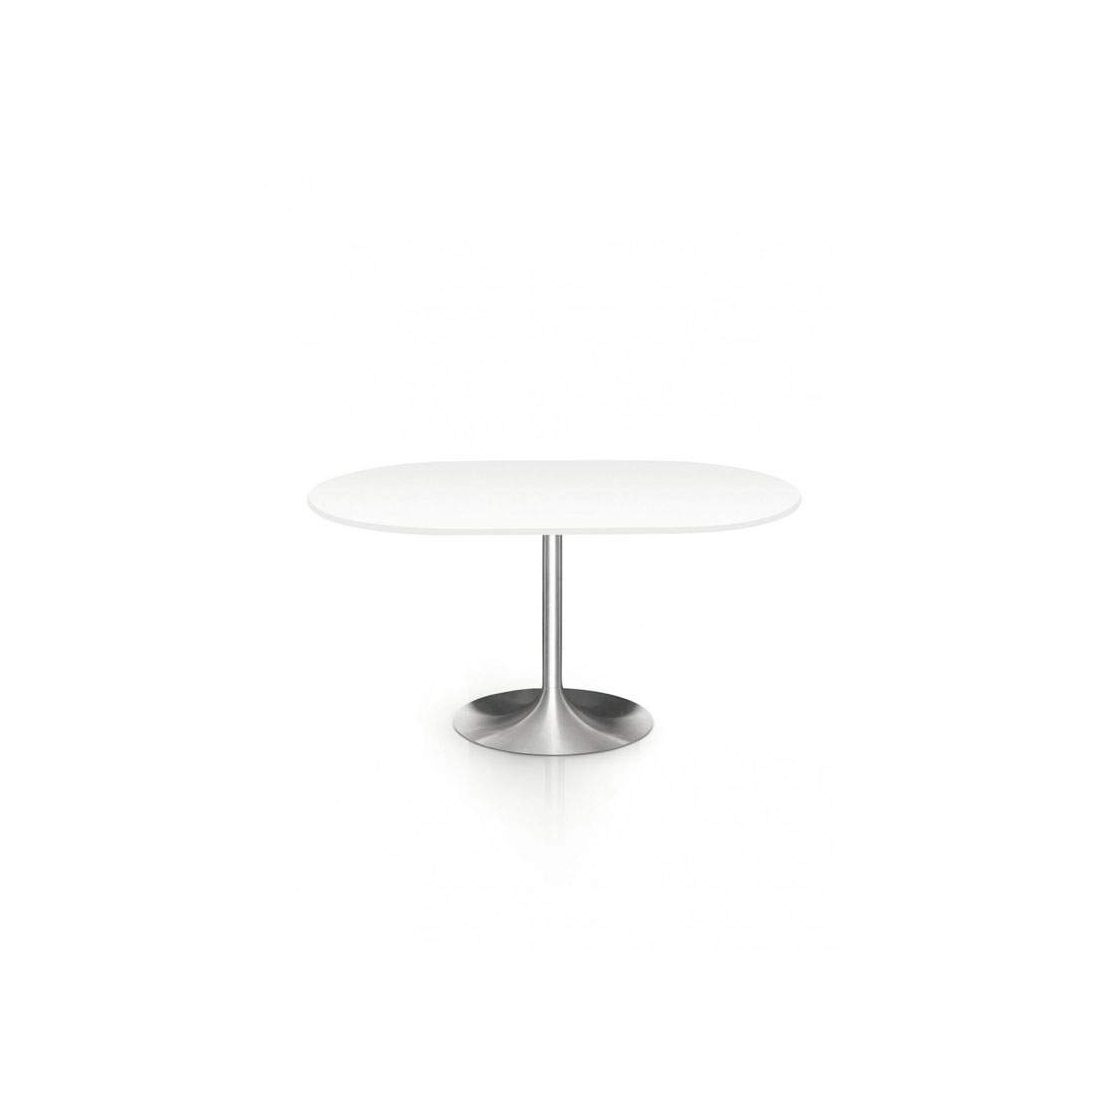 Table ronde salle a manger joe myyour zendart design for Table ronde pour salle a manger